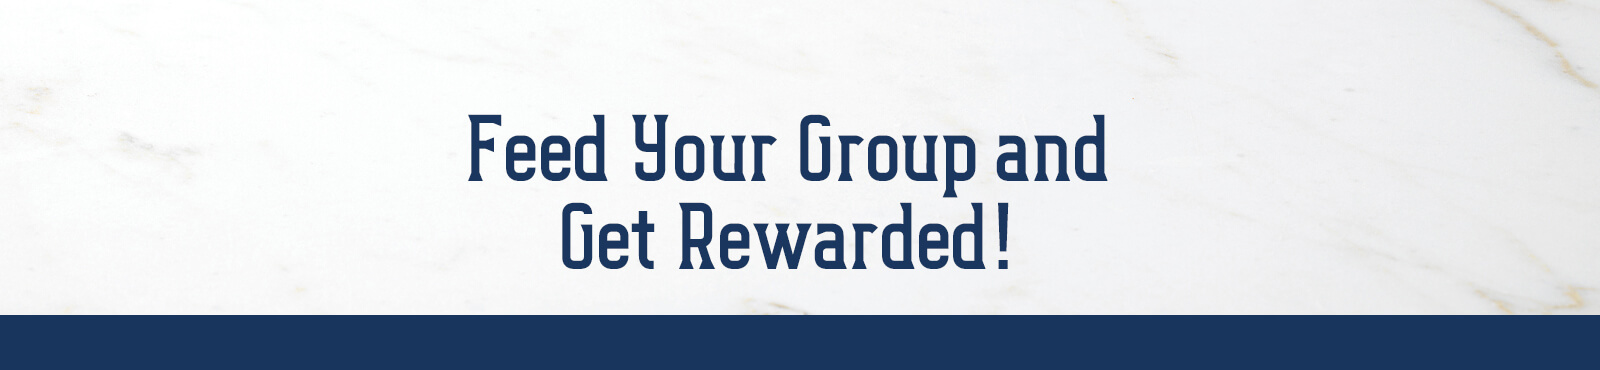 Feed your group and get rewarded